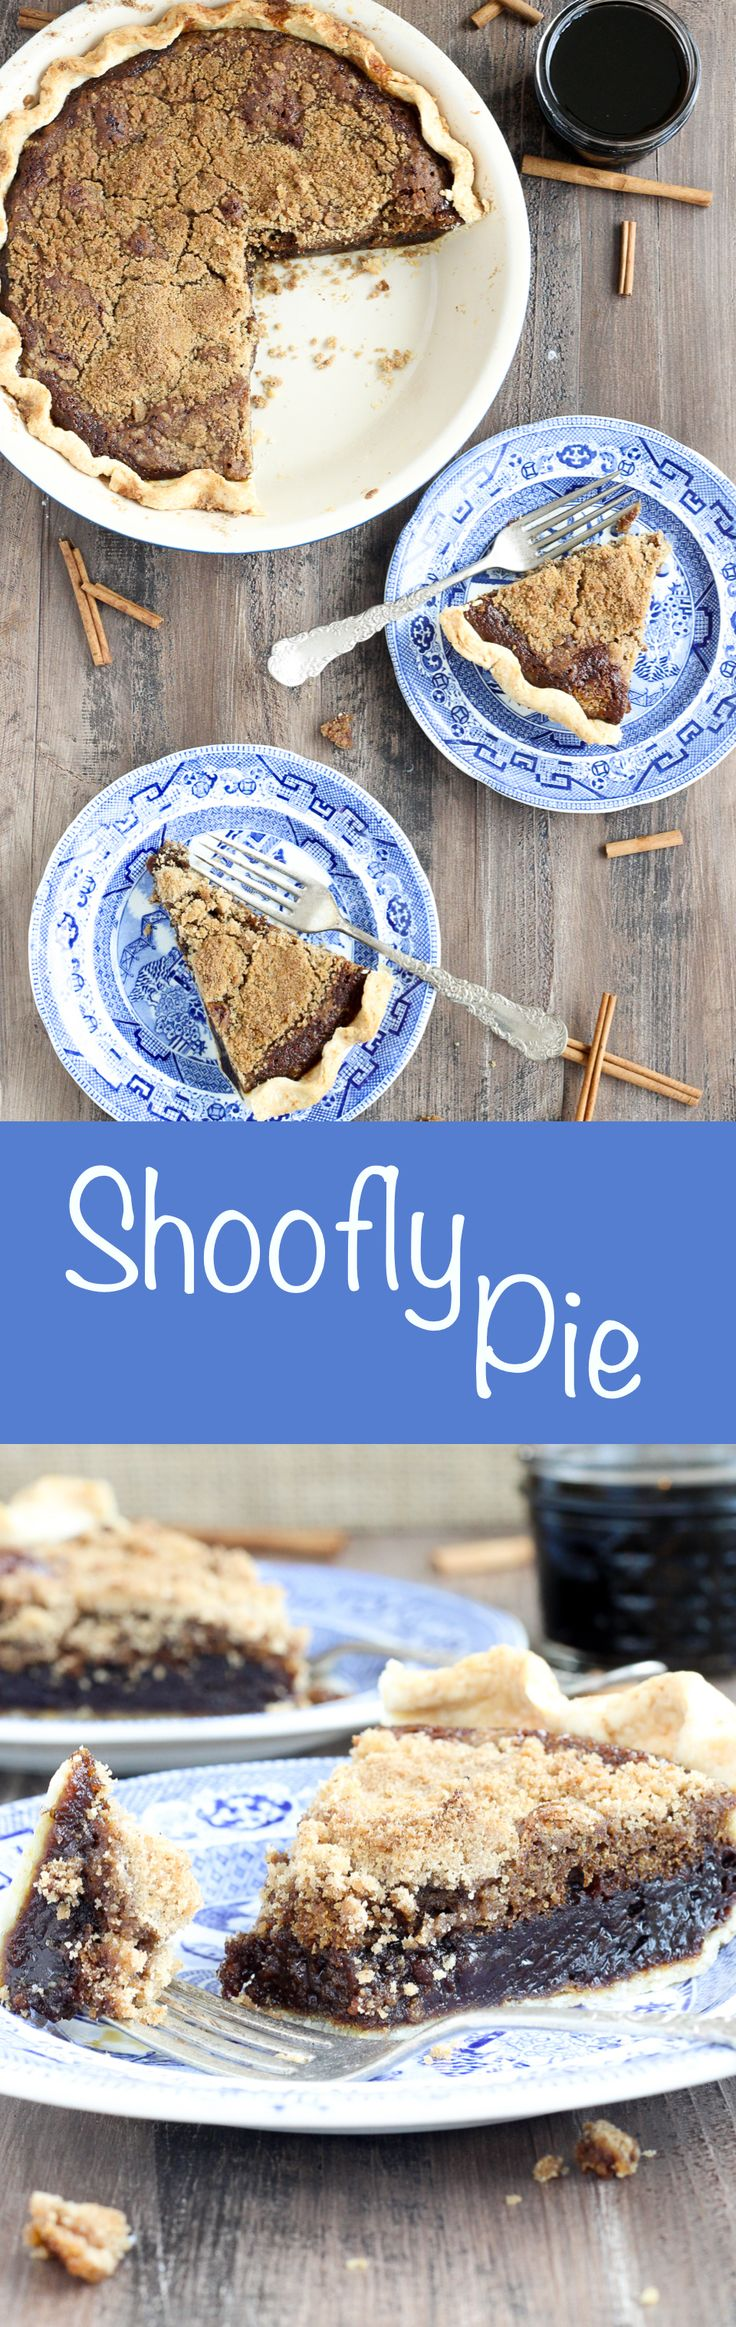 This shoofly pie has all the flavors of a molasses ginger cookie mixed with a buttery streusel in a flakey pastry crust. The rich, spicy, sweet filling just melts in your mouth bite after bite (slice after slice)